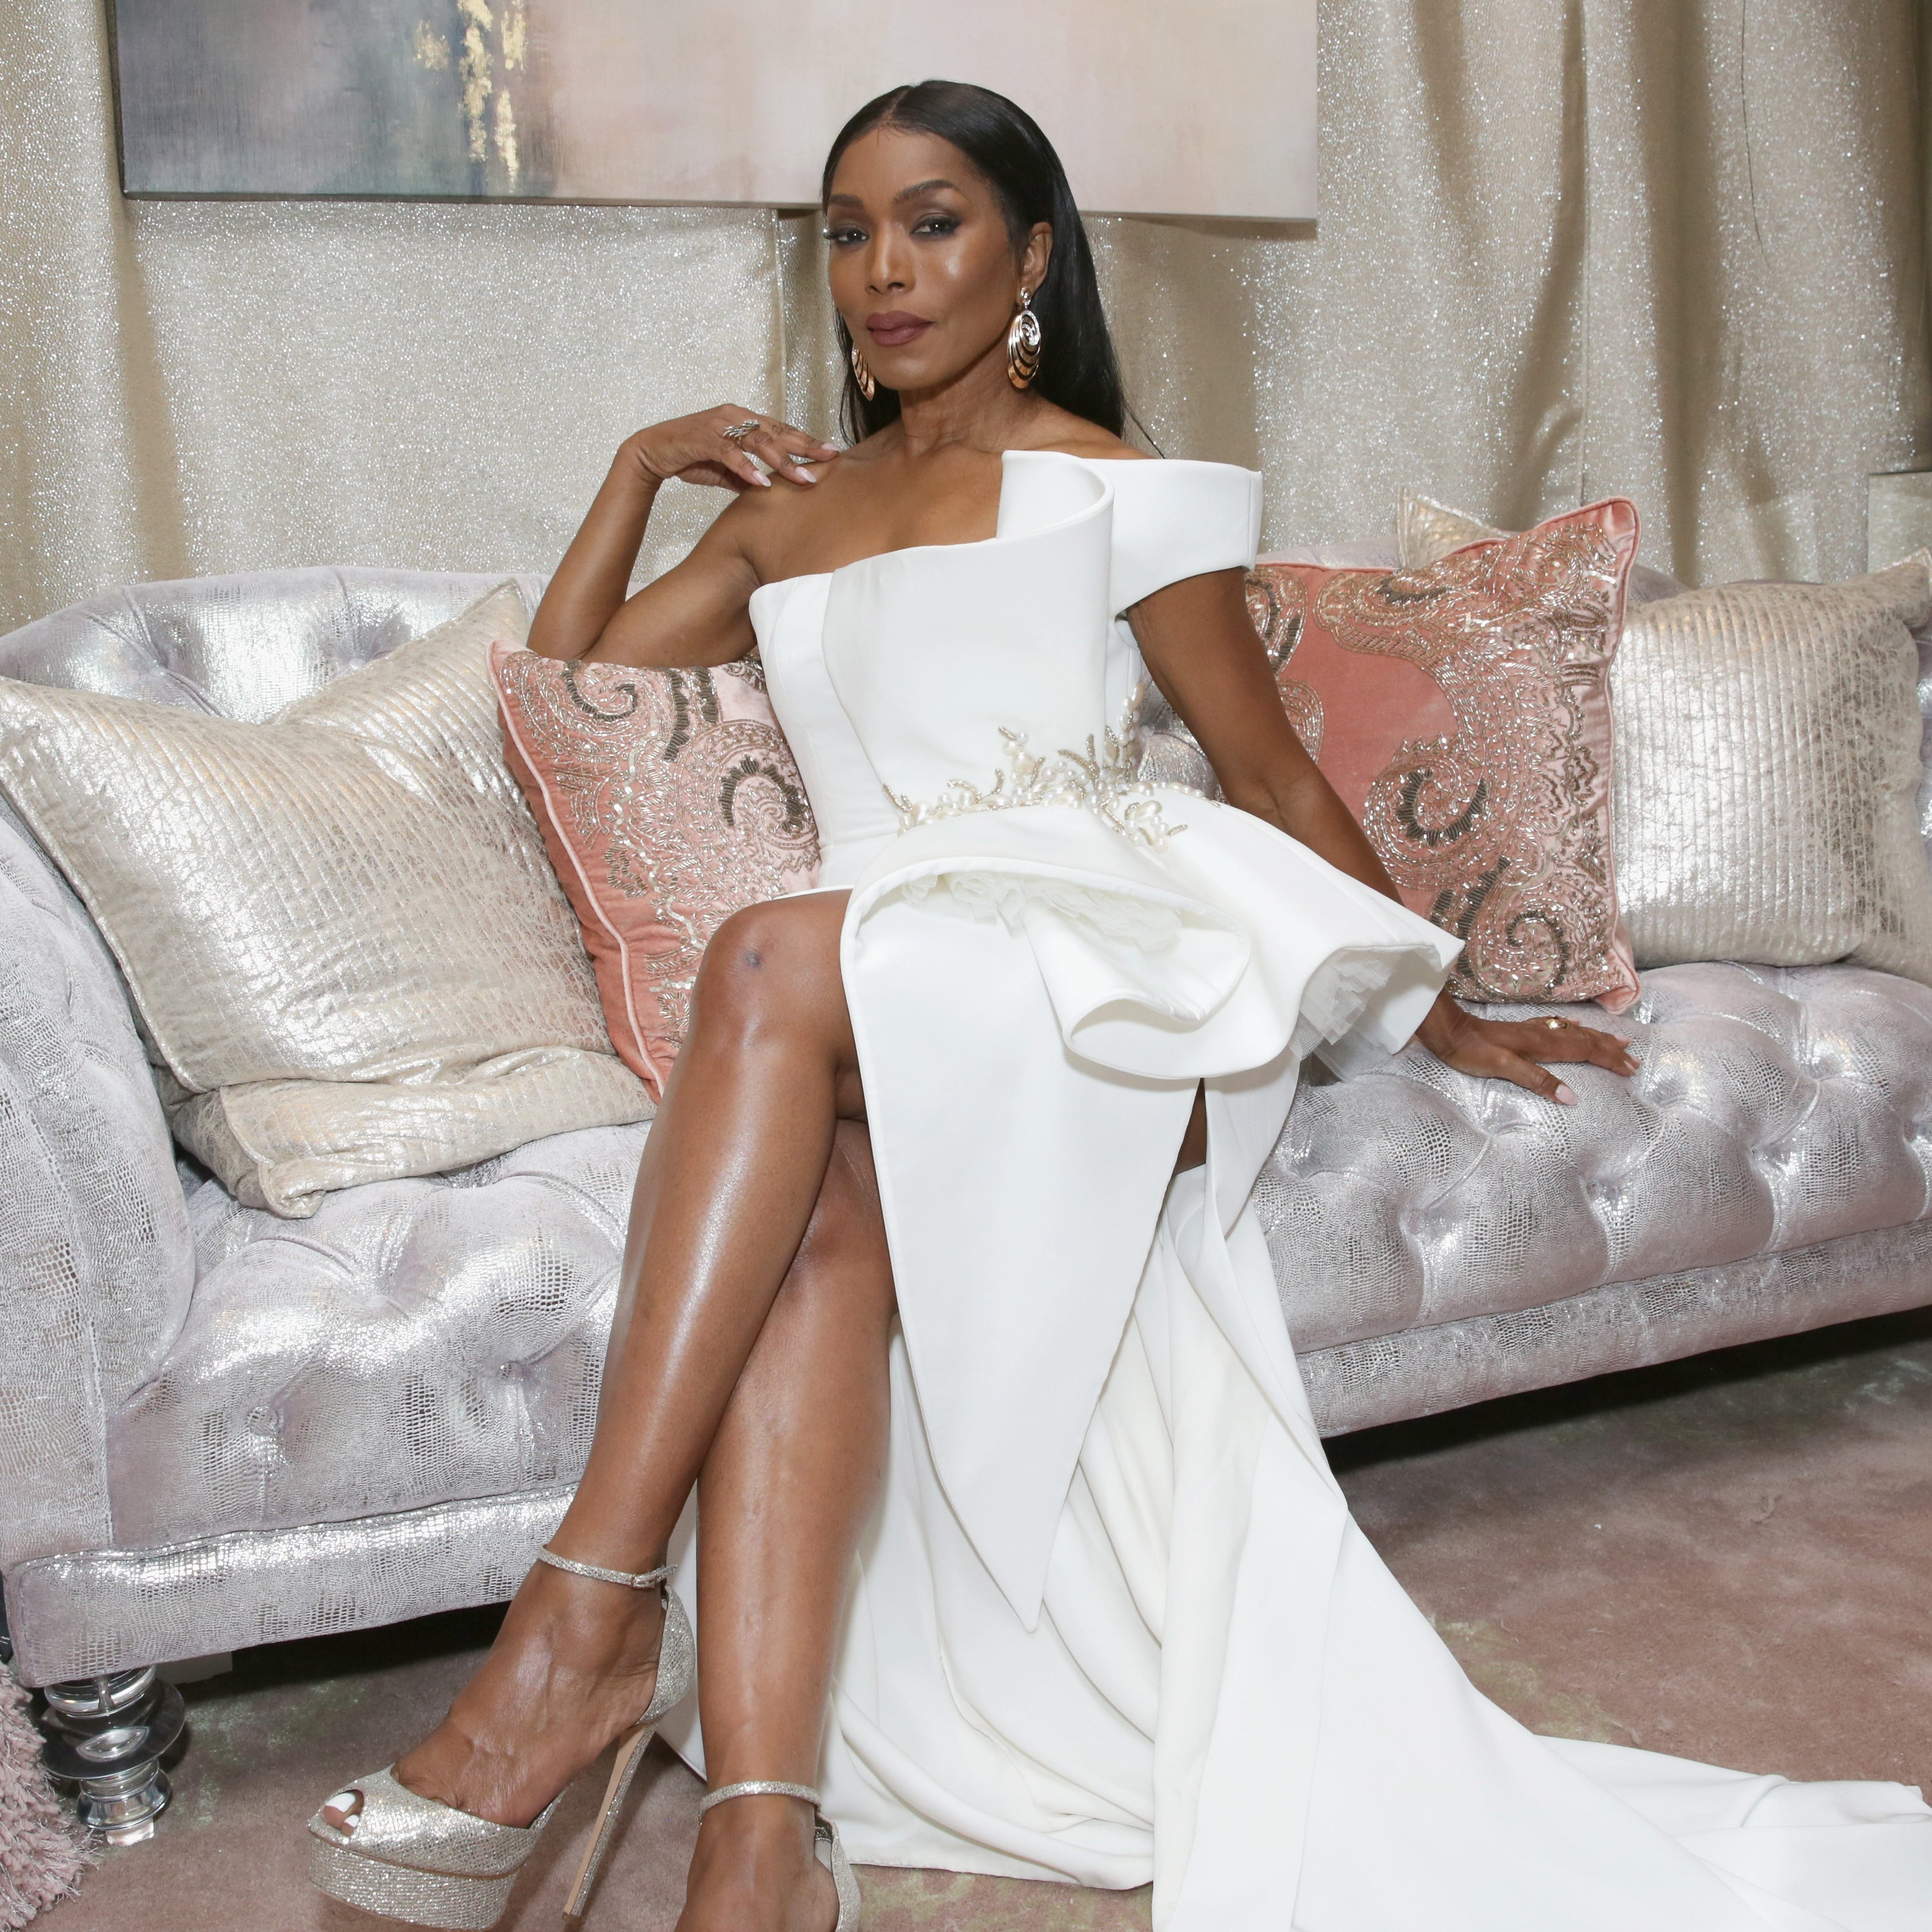 'No worries!': Angela Bassett lets New York Times' Omarosa Manigault Newman mix-up slide